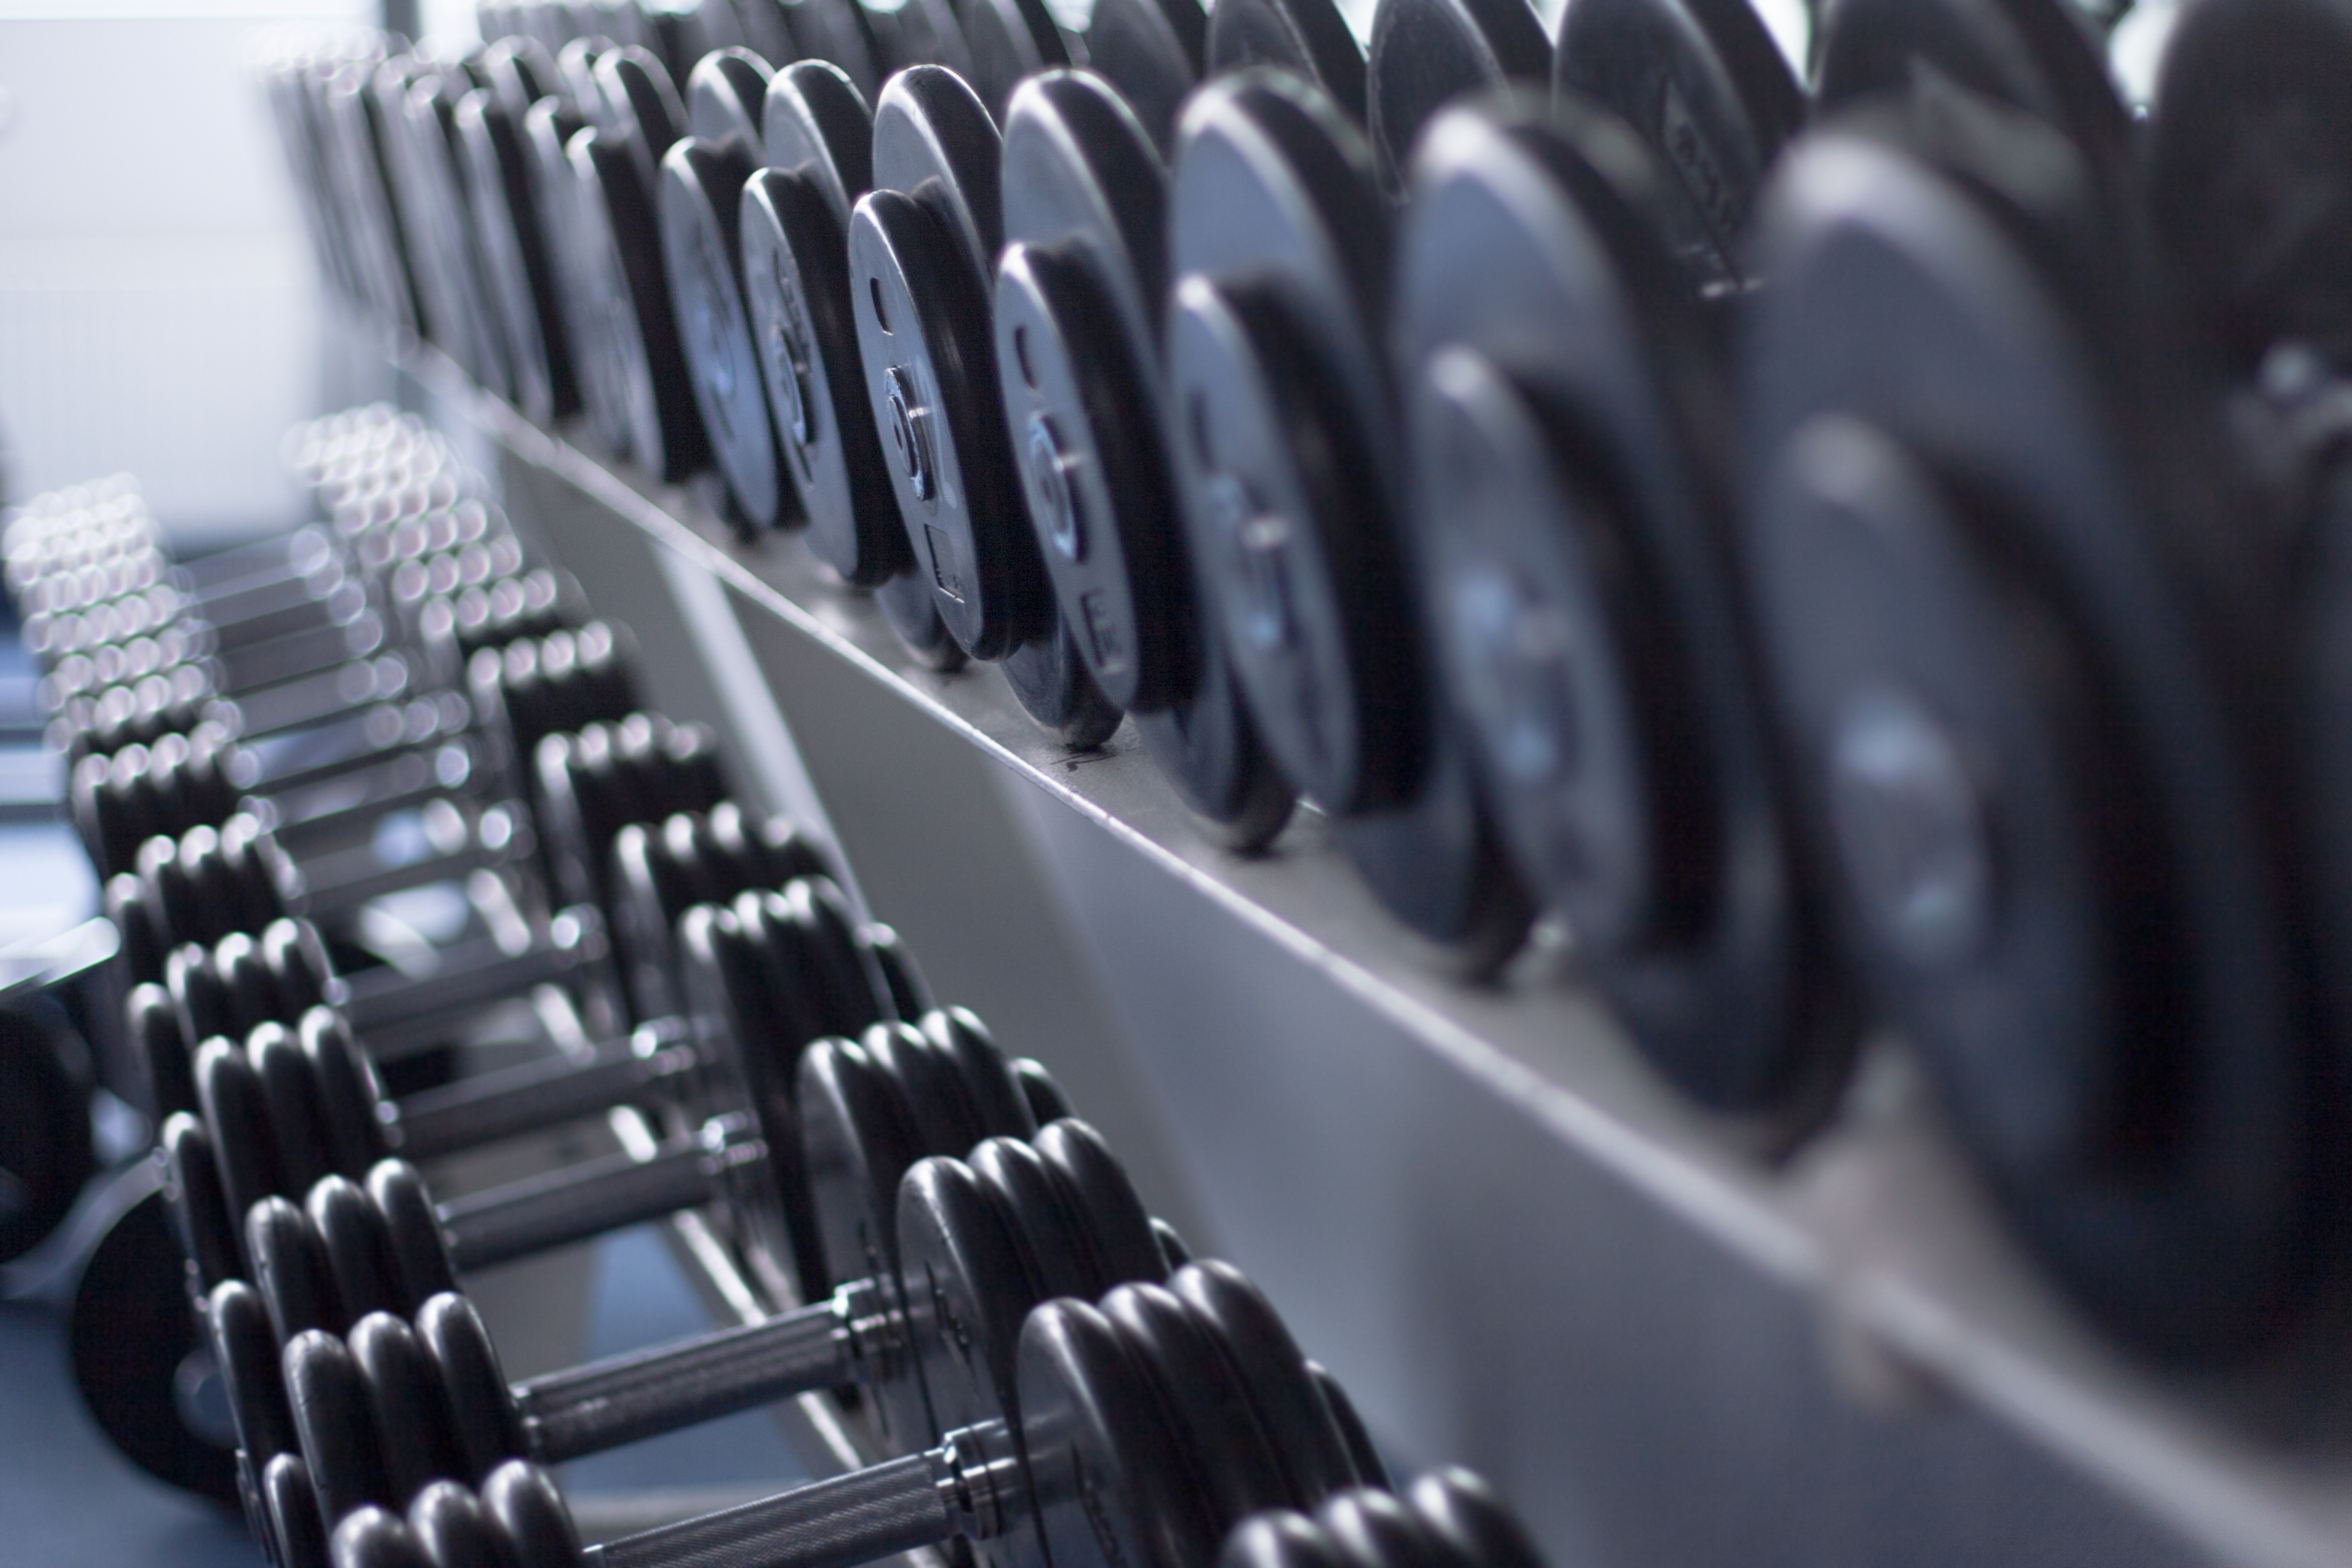 Don T Waste Your Cash Used Dumbbells For Sale In 2018